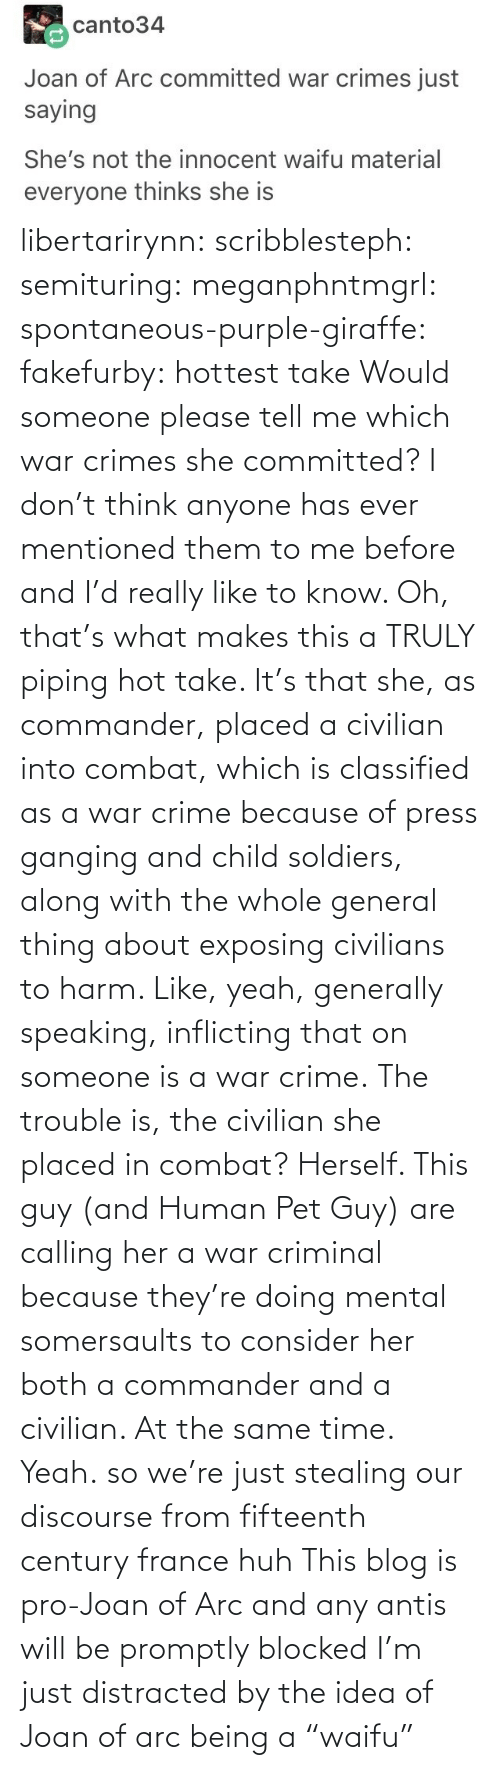 "About: libertarirynn: scribblesteph:  semituring:  meganphntmgrl:  spontaneous-purple-giraffe:   fakefurby: hottest take  Would someone please tell me which war crimes she committed? I don't think anyone has ever mentioned them to me before and I'd really like to know.    Oh, that's what makes this a TRULY piping hot take. It's that she, as commander, placed a civilian into combat, which is classified as a war crime because of press ganging and child soldiers, along with the whole general thing about exposing civilians to harm. Like, yeah, generally speaking, inflicting that on someone is a war crime. The trouble is, the civilian she placed in combat? Herself.  This guy (and Human Pet Guy) are calling her a war criminal because they're doing mental somersaults to consider her both a commander and a civilian. At the same time.  Yeah.  so we're just stealing our discourse from fifteenth century france huh   This blog is pro-Joan of Arc and any antis will be promptly blocked   I'm just distracted by the idea of Joan of arc being a ""waifu"""